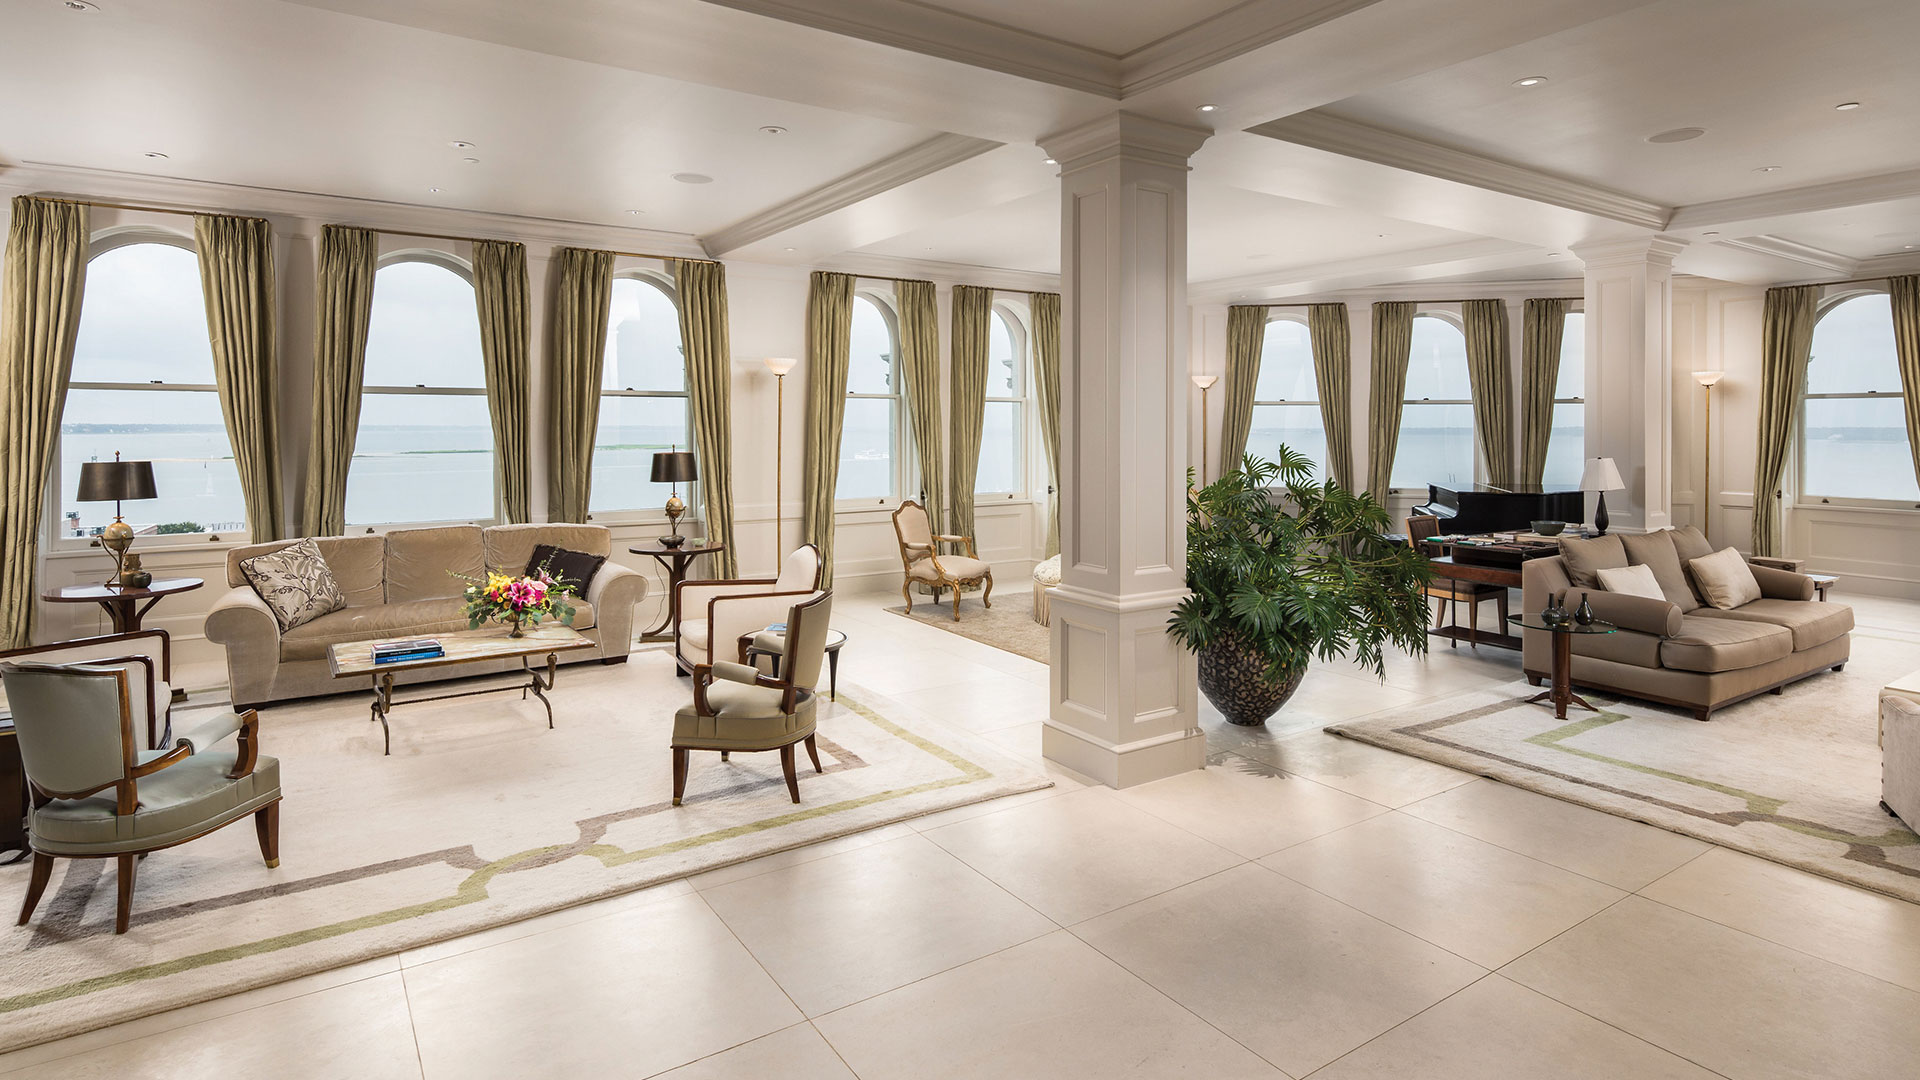 Spacious Grand Salon